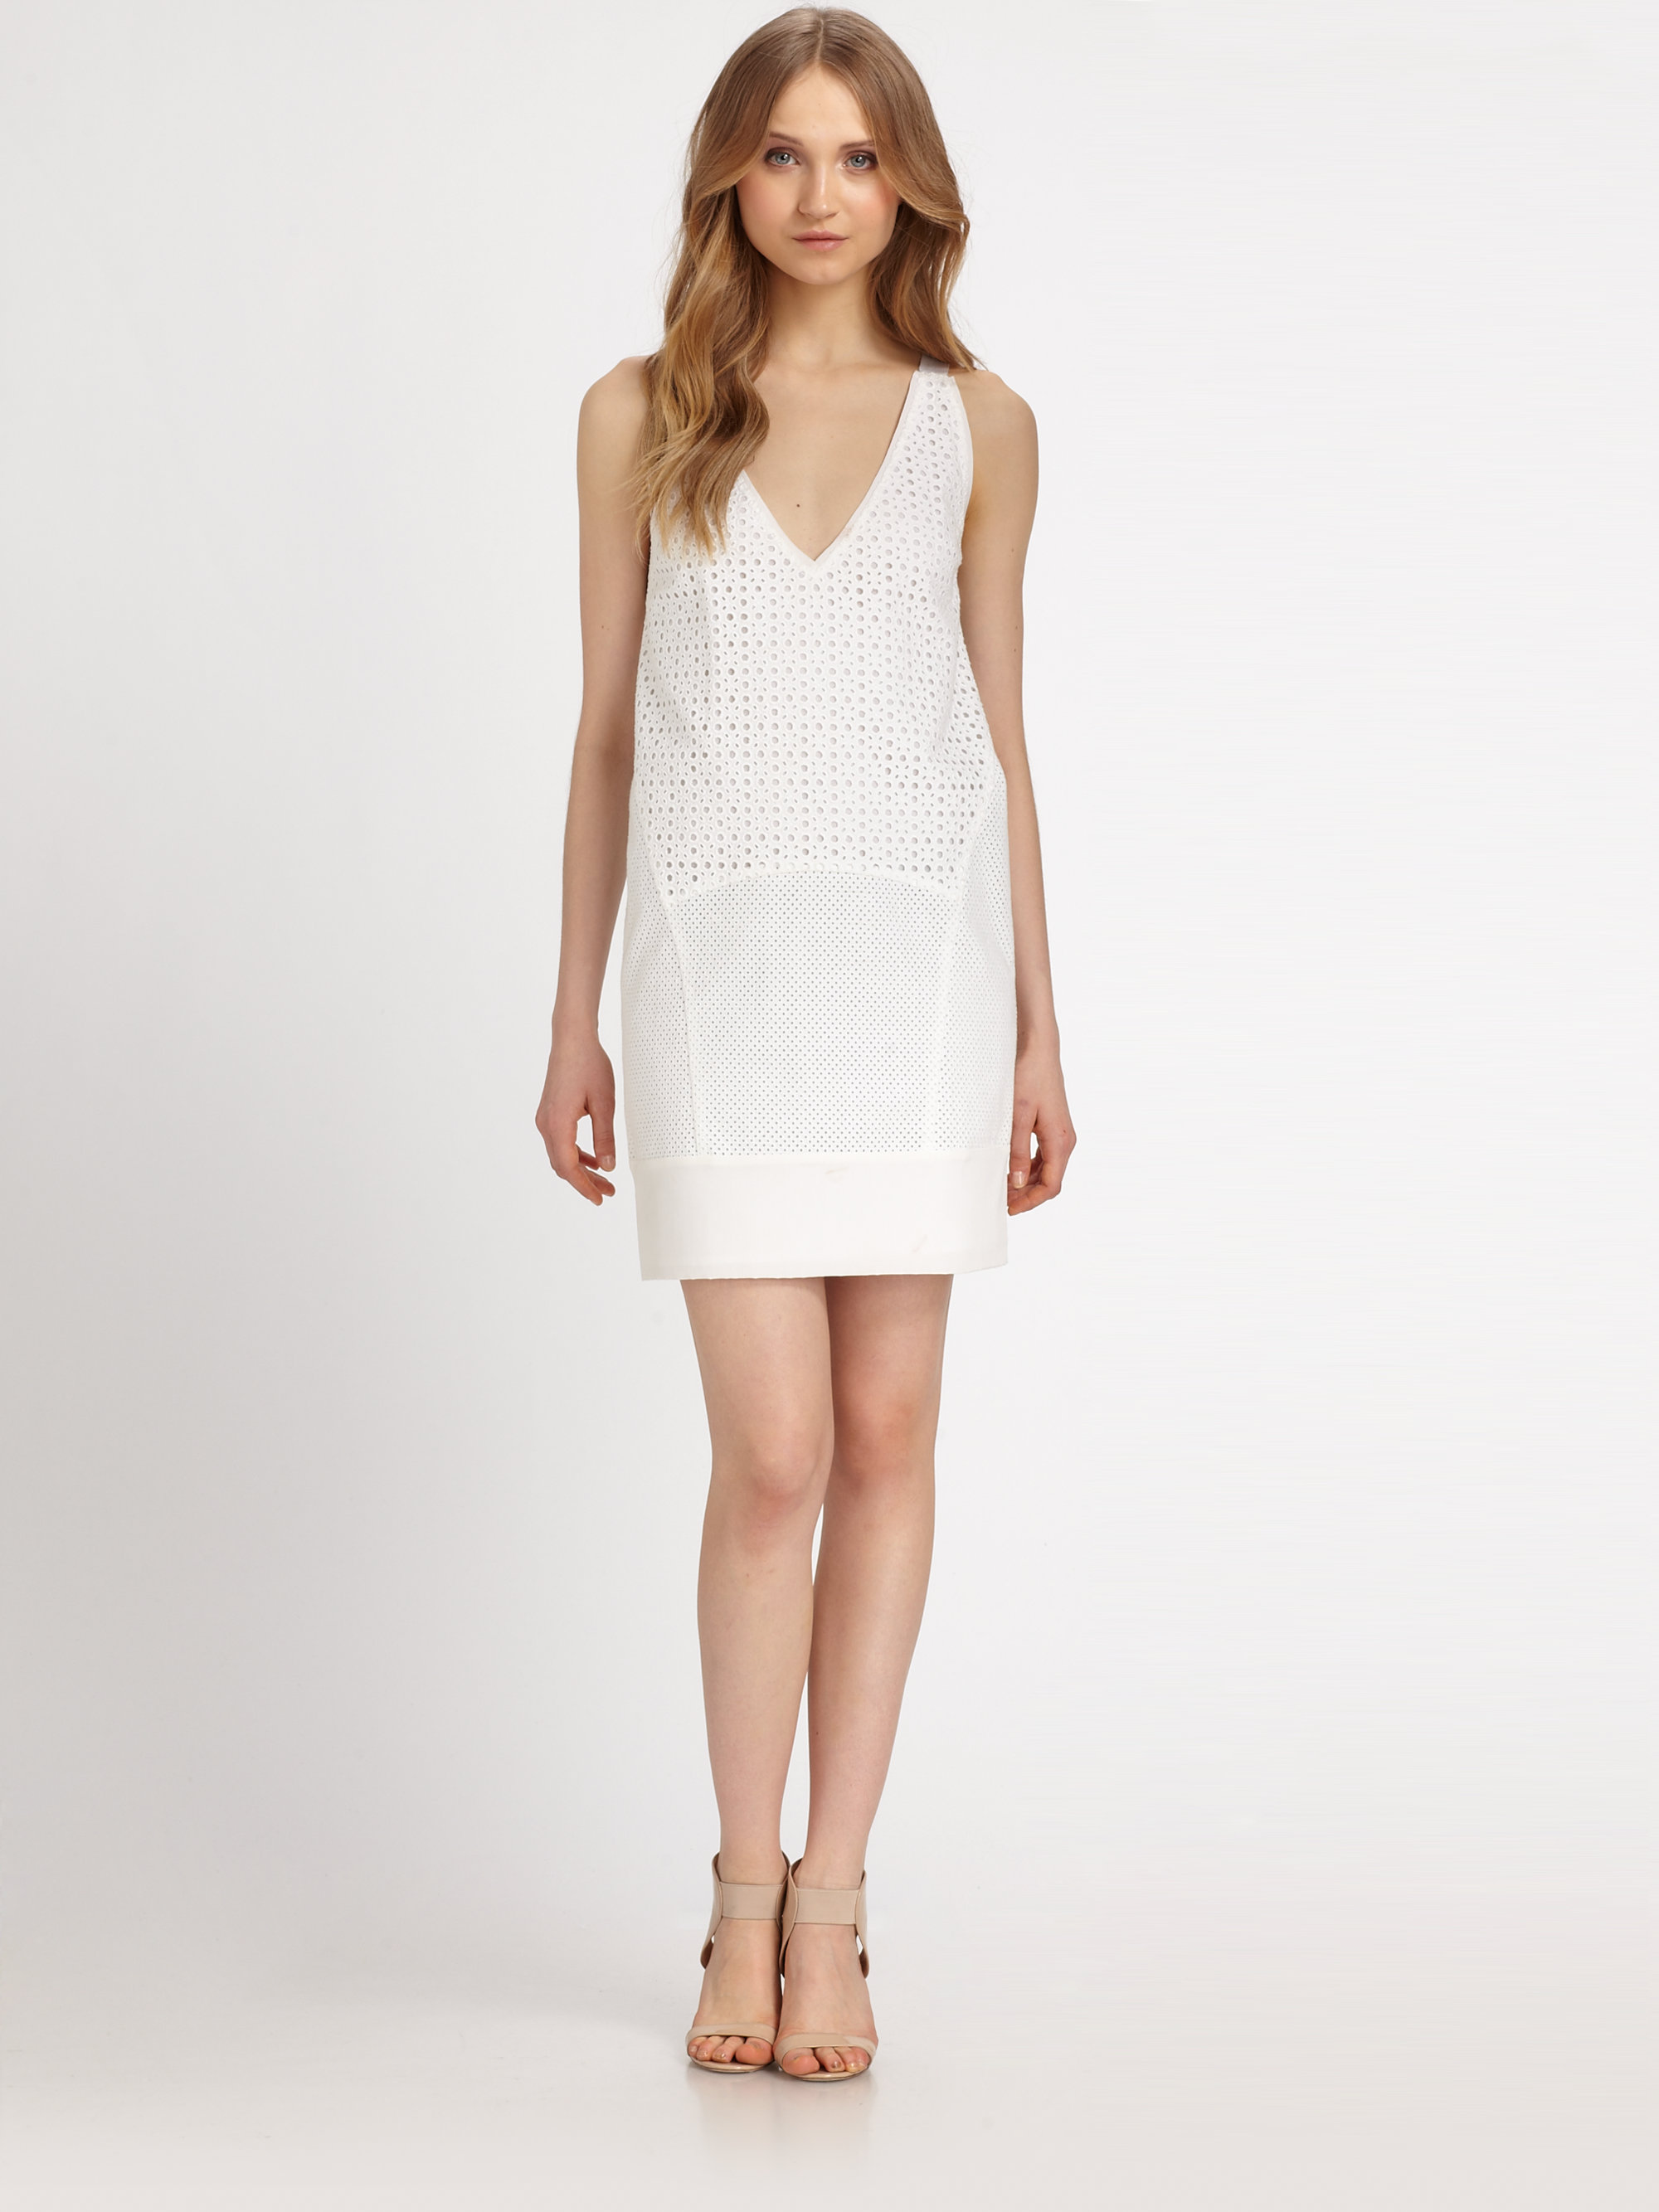 Lyst Dkny Cotton Eyelet Chemise Dress In White